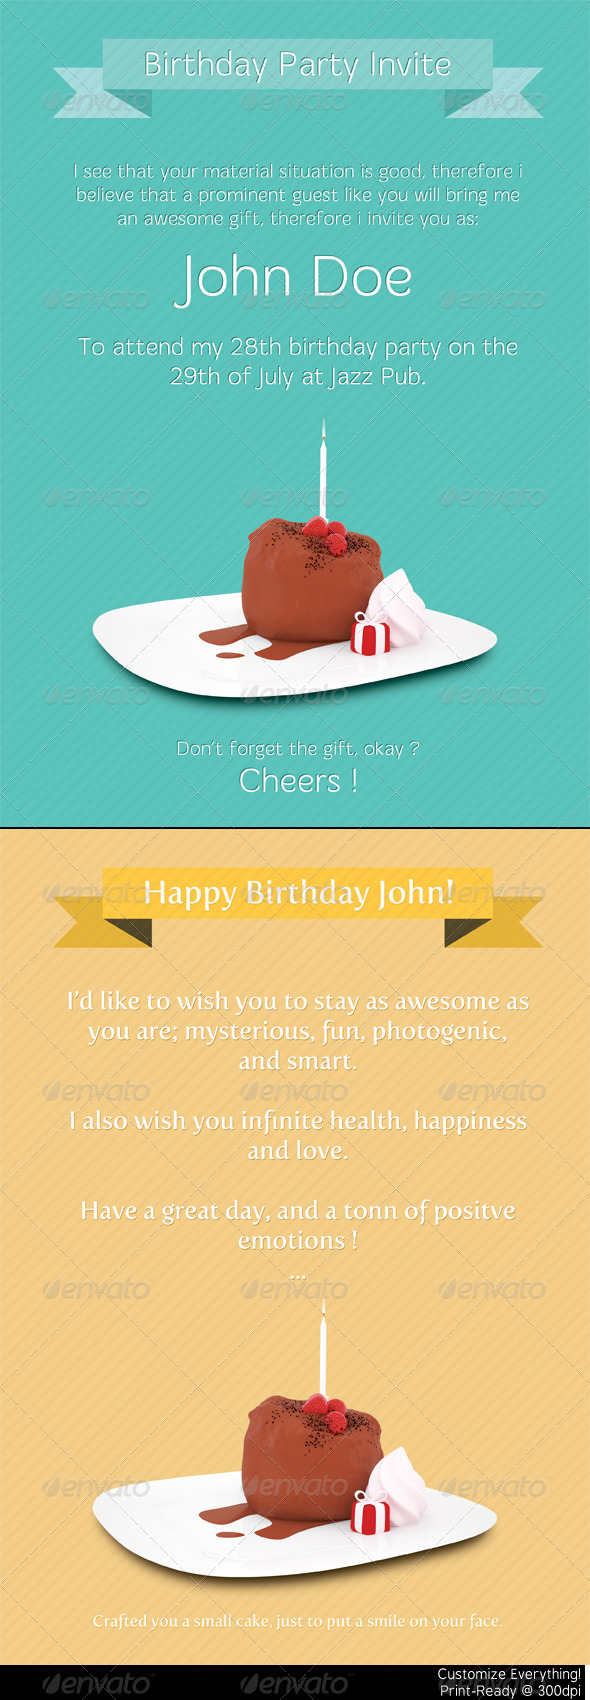 Graphic River Birthday Print Templates Print Templates -  Cards & Invites  Greeting Cards  Birthday 775451